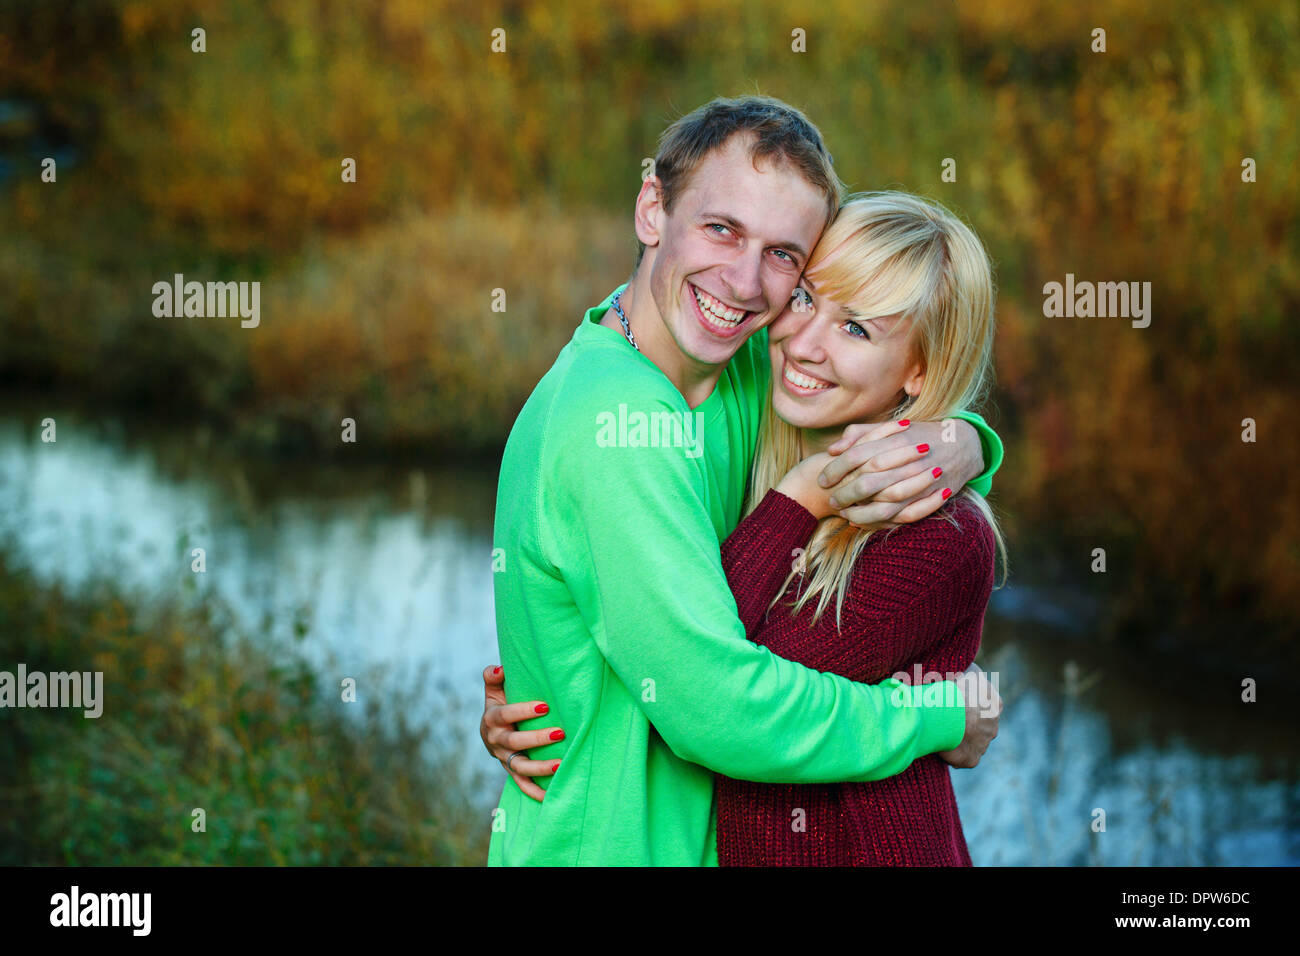 Young couple tenderly and lovingly embrace each other on banks of river - Stock Image